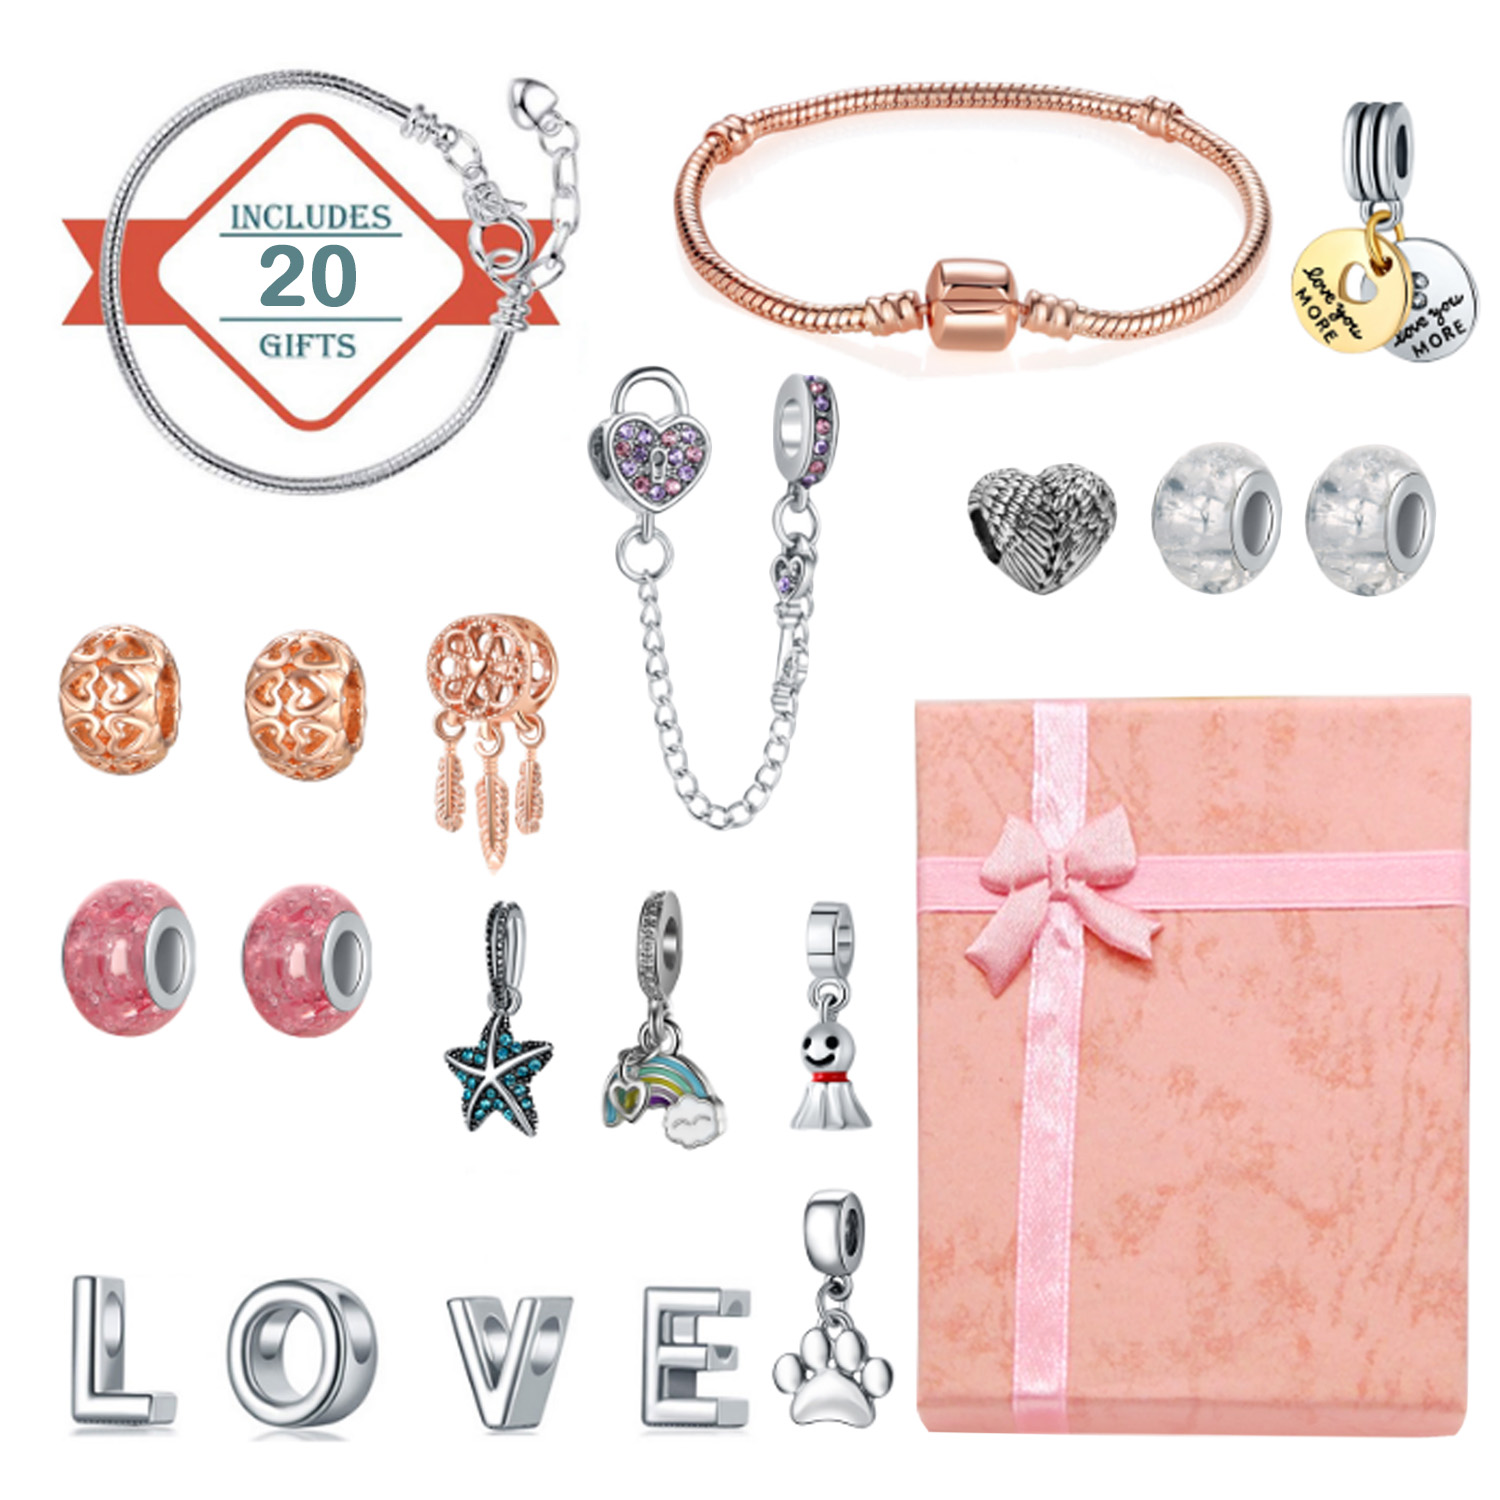 20pcs DIY Bracelet Charm Bead Peandants Jewelry Making Supplies With Present Box For Birthday Valentine Mother Day New Year Gift